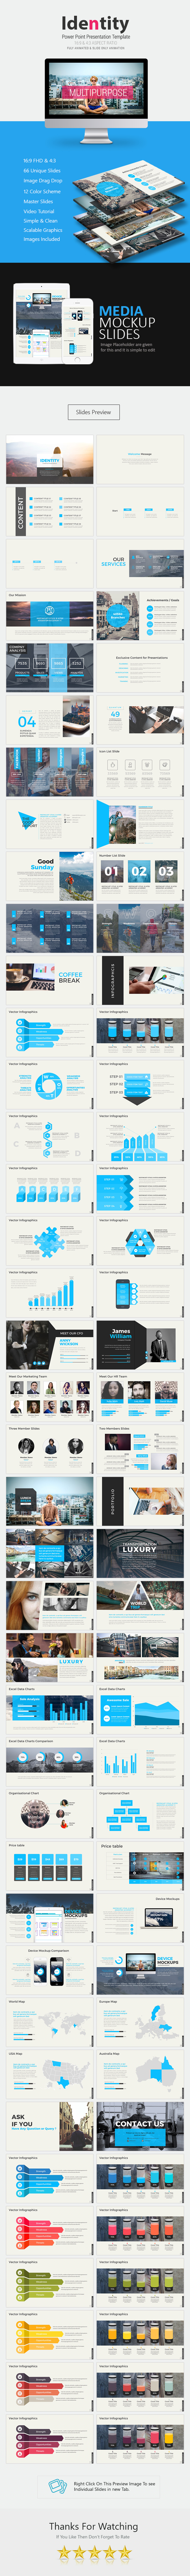 Identity Power Point Presentation - Business PowerPoint Templates